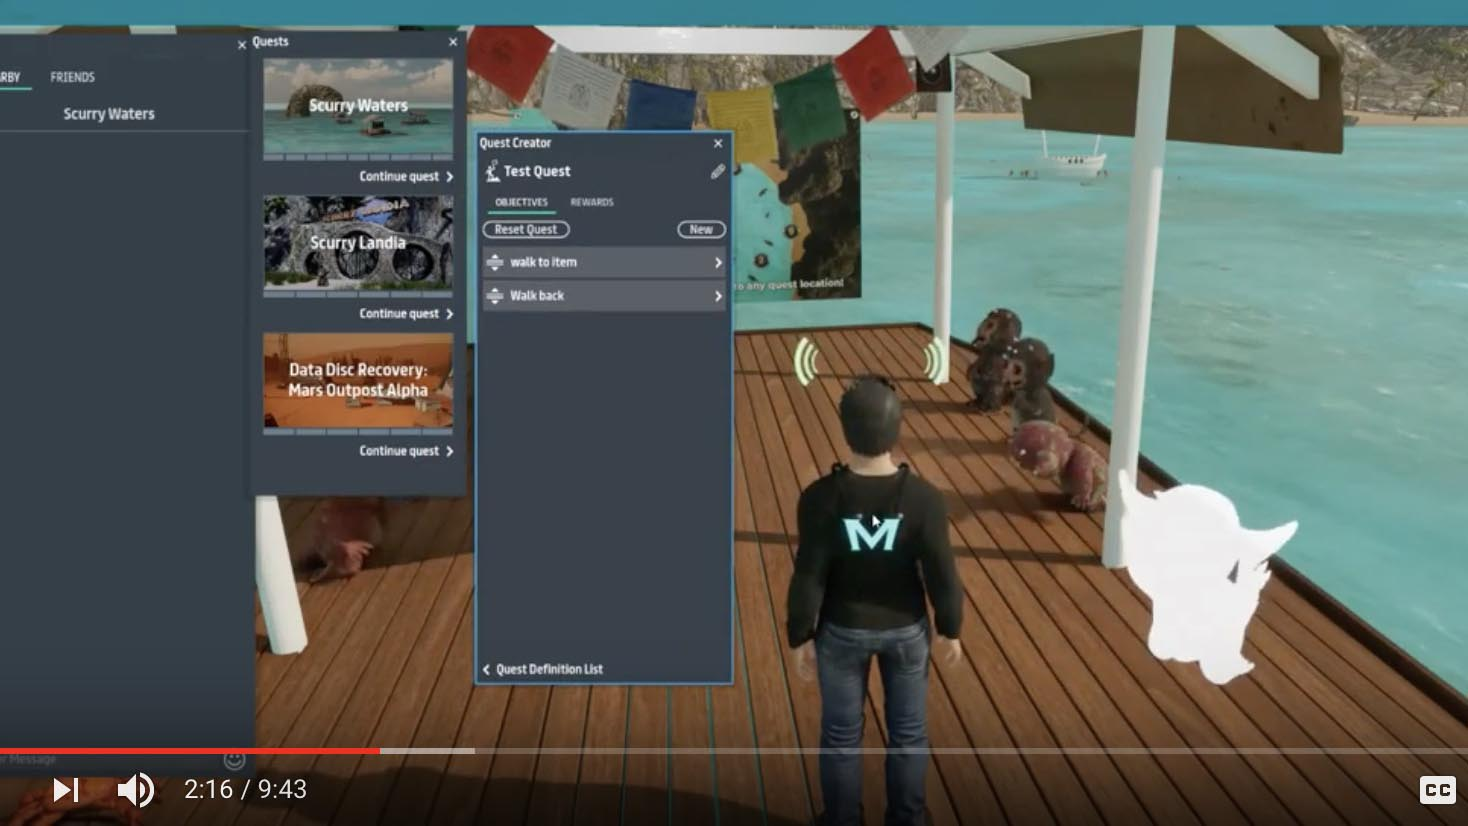 How to set up a Basic Quest in Sansar